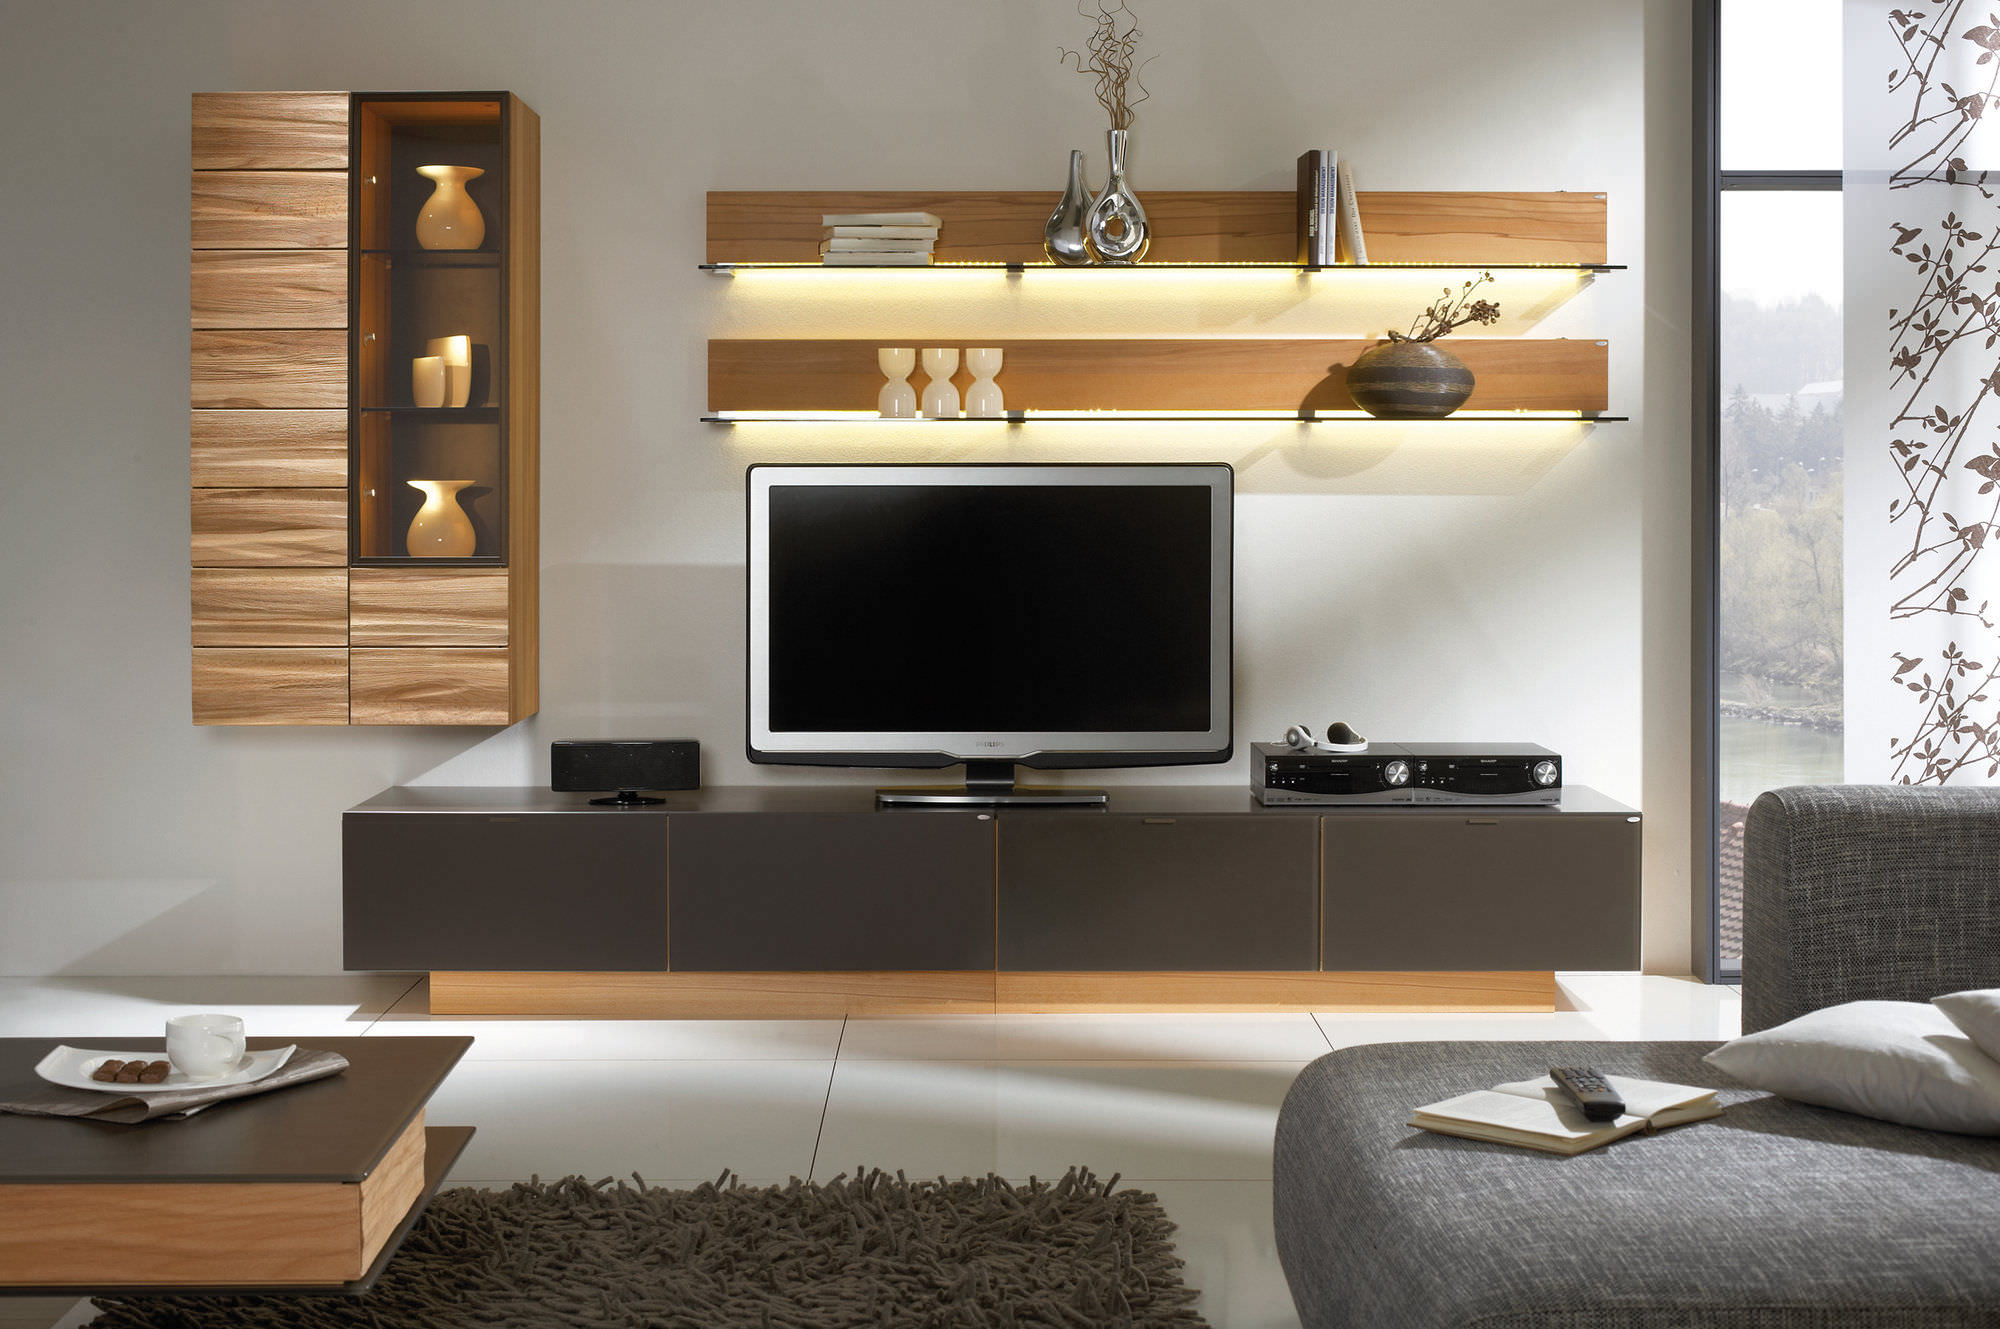 20 modern tv unit design ideas for bedroom living room with pictures Small living room designs with tv